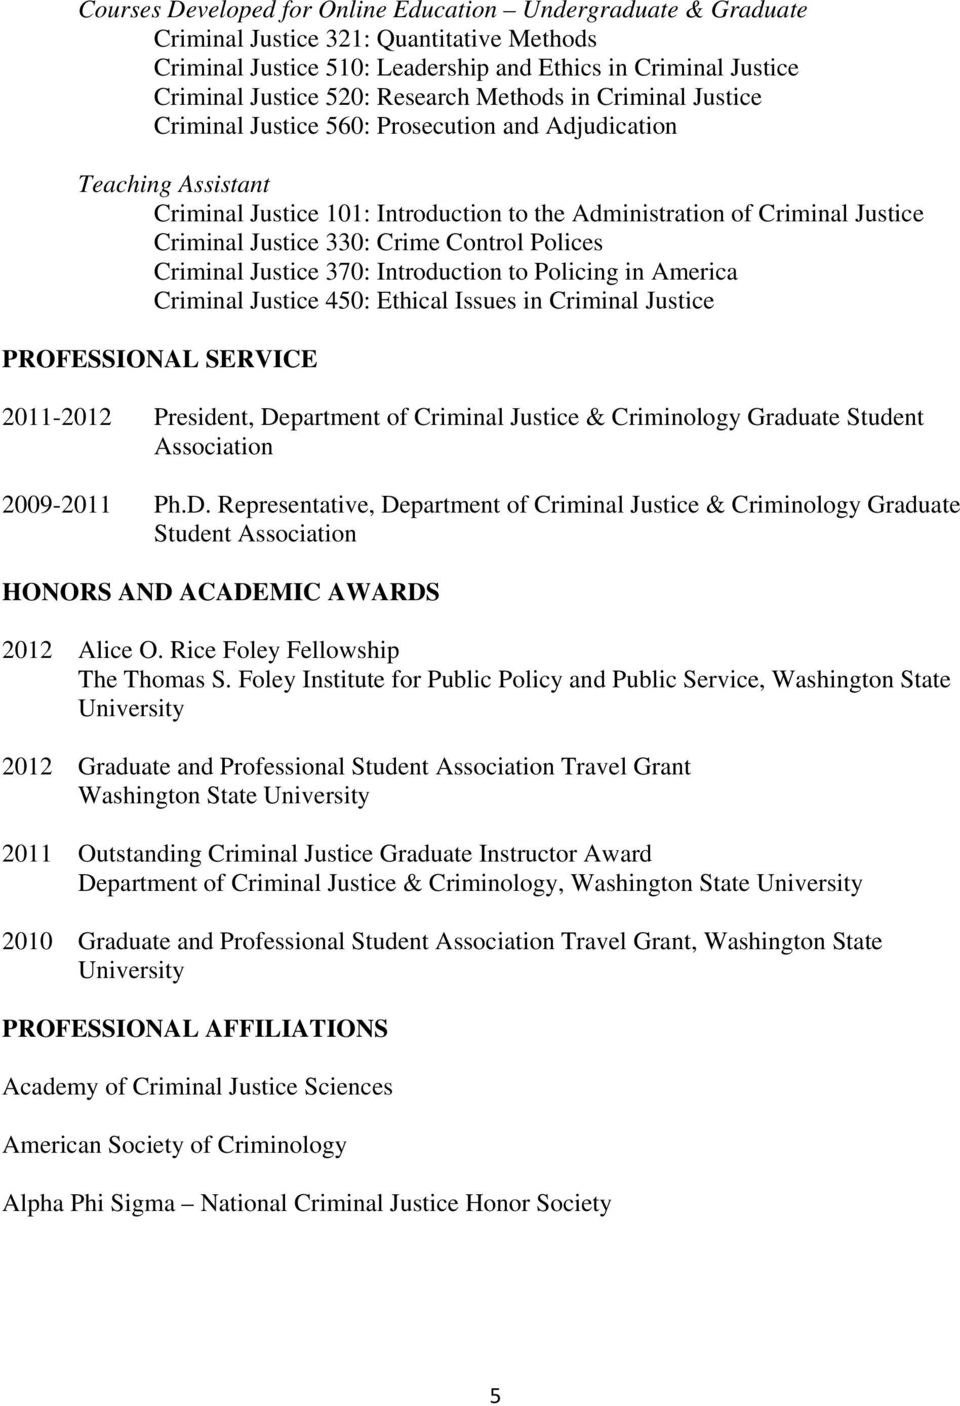 Justice 330: Crime Control Polices Criminal Justice 370: Introduction to Policing in America Criminal Justice 450: Ethical Issues in Criminal Justice PROFESSIONAL SERVICE 2011-2012 President,